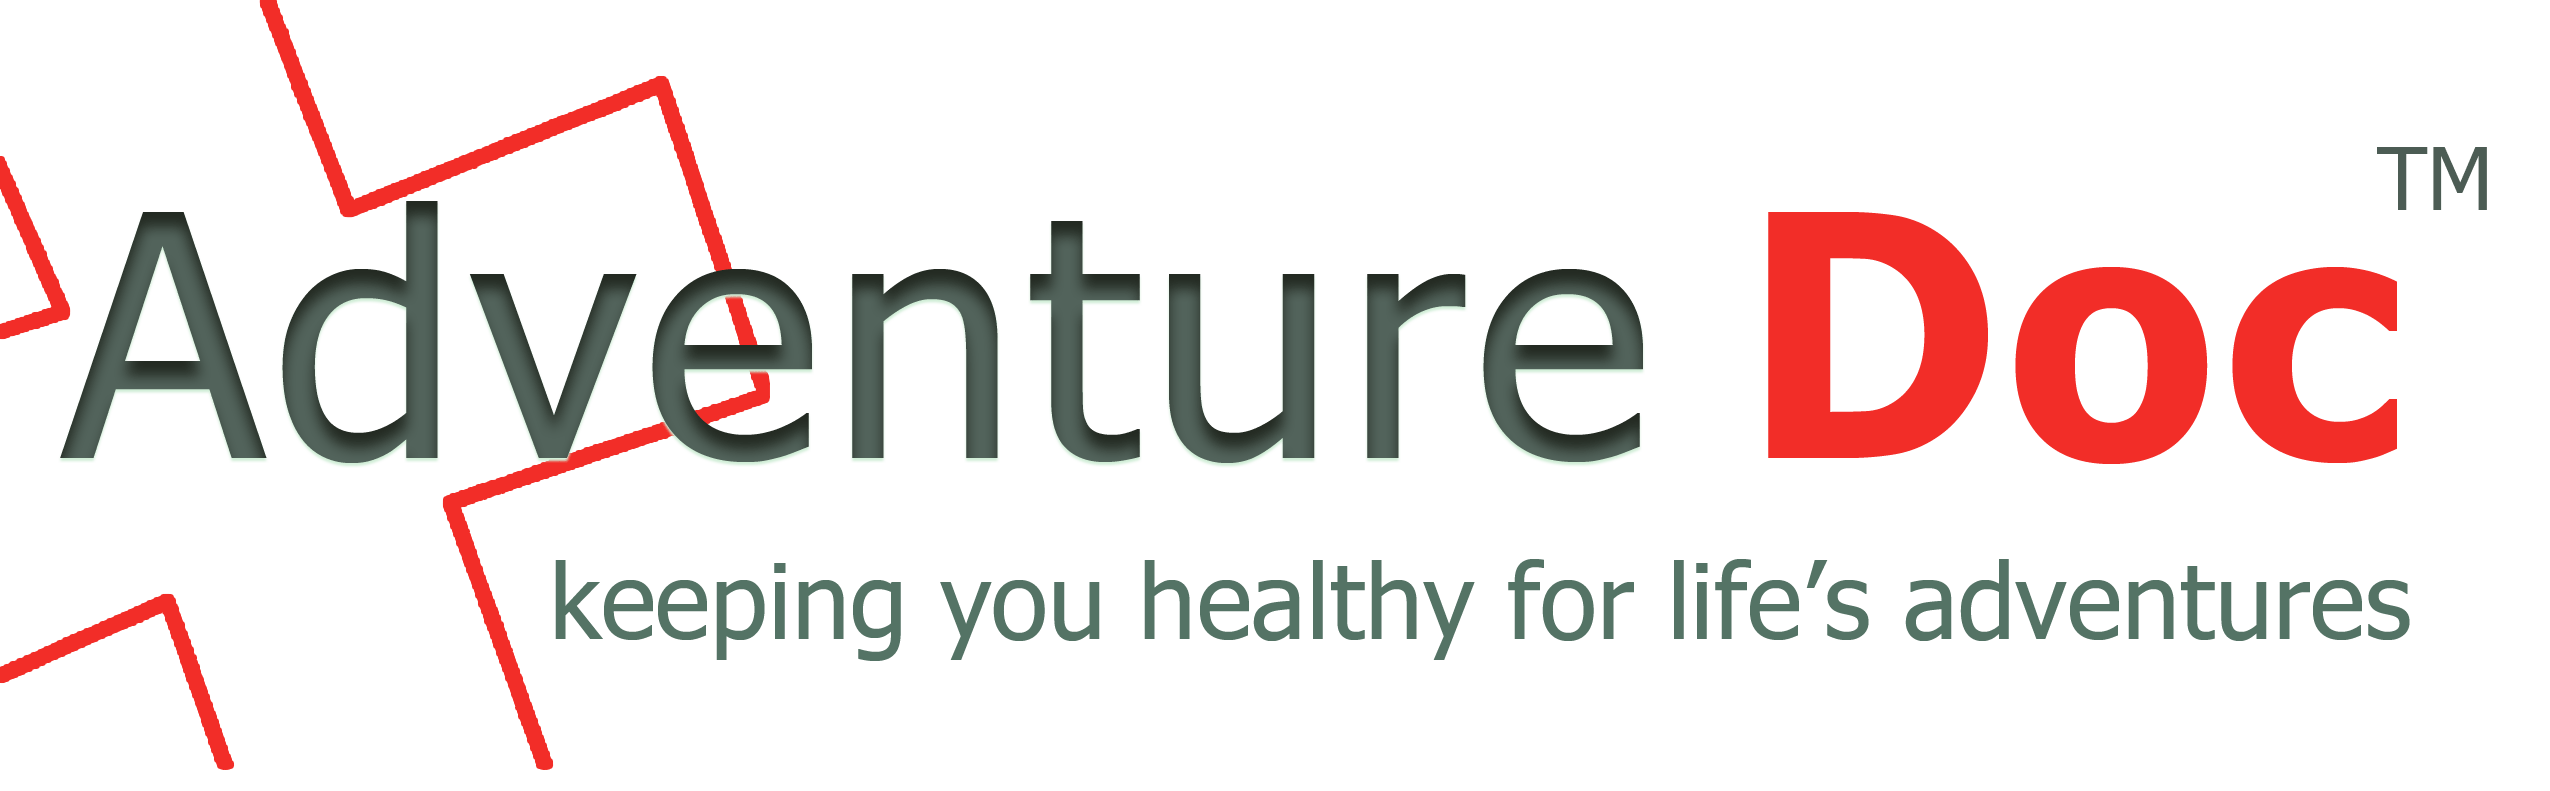 Adventure Doc: Global Health and Medical Intelligence Reports